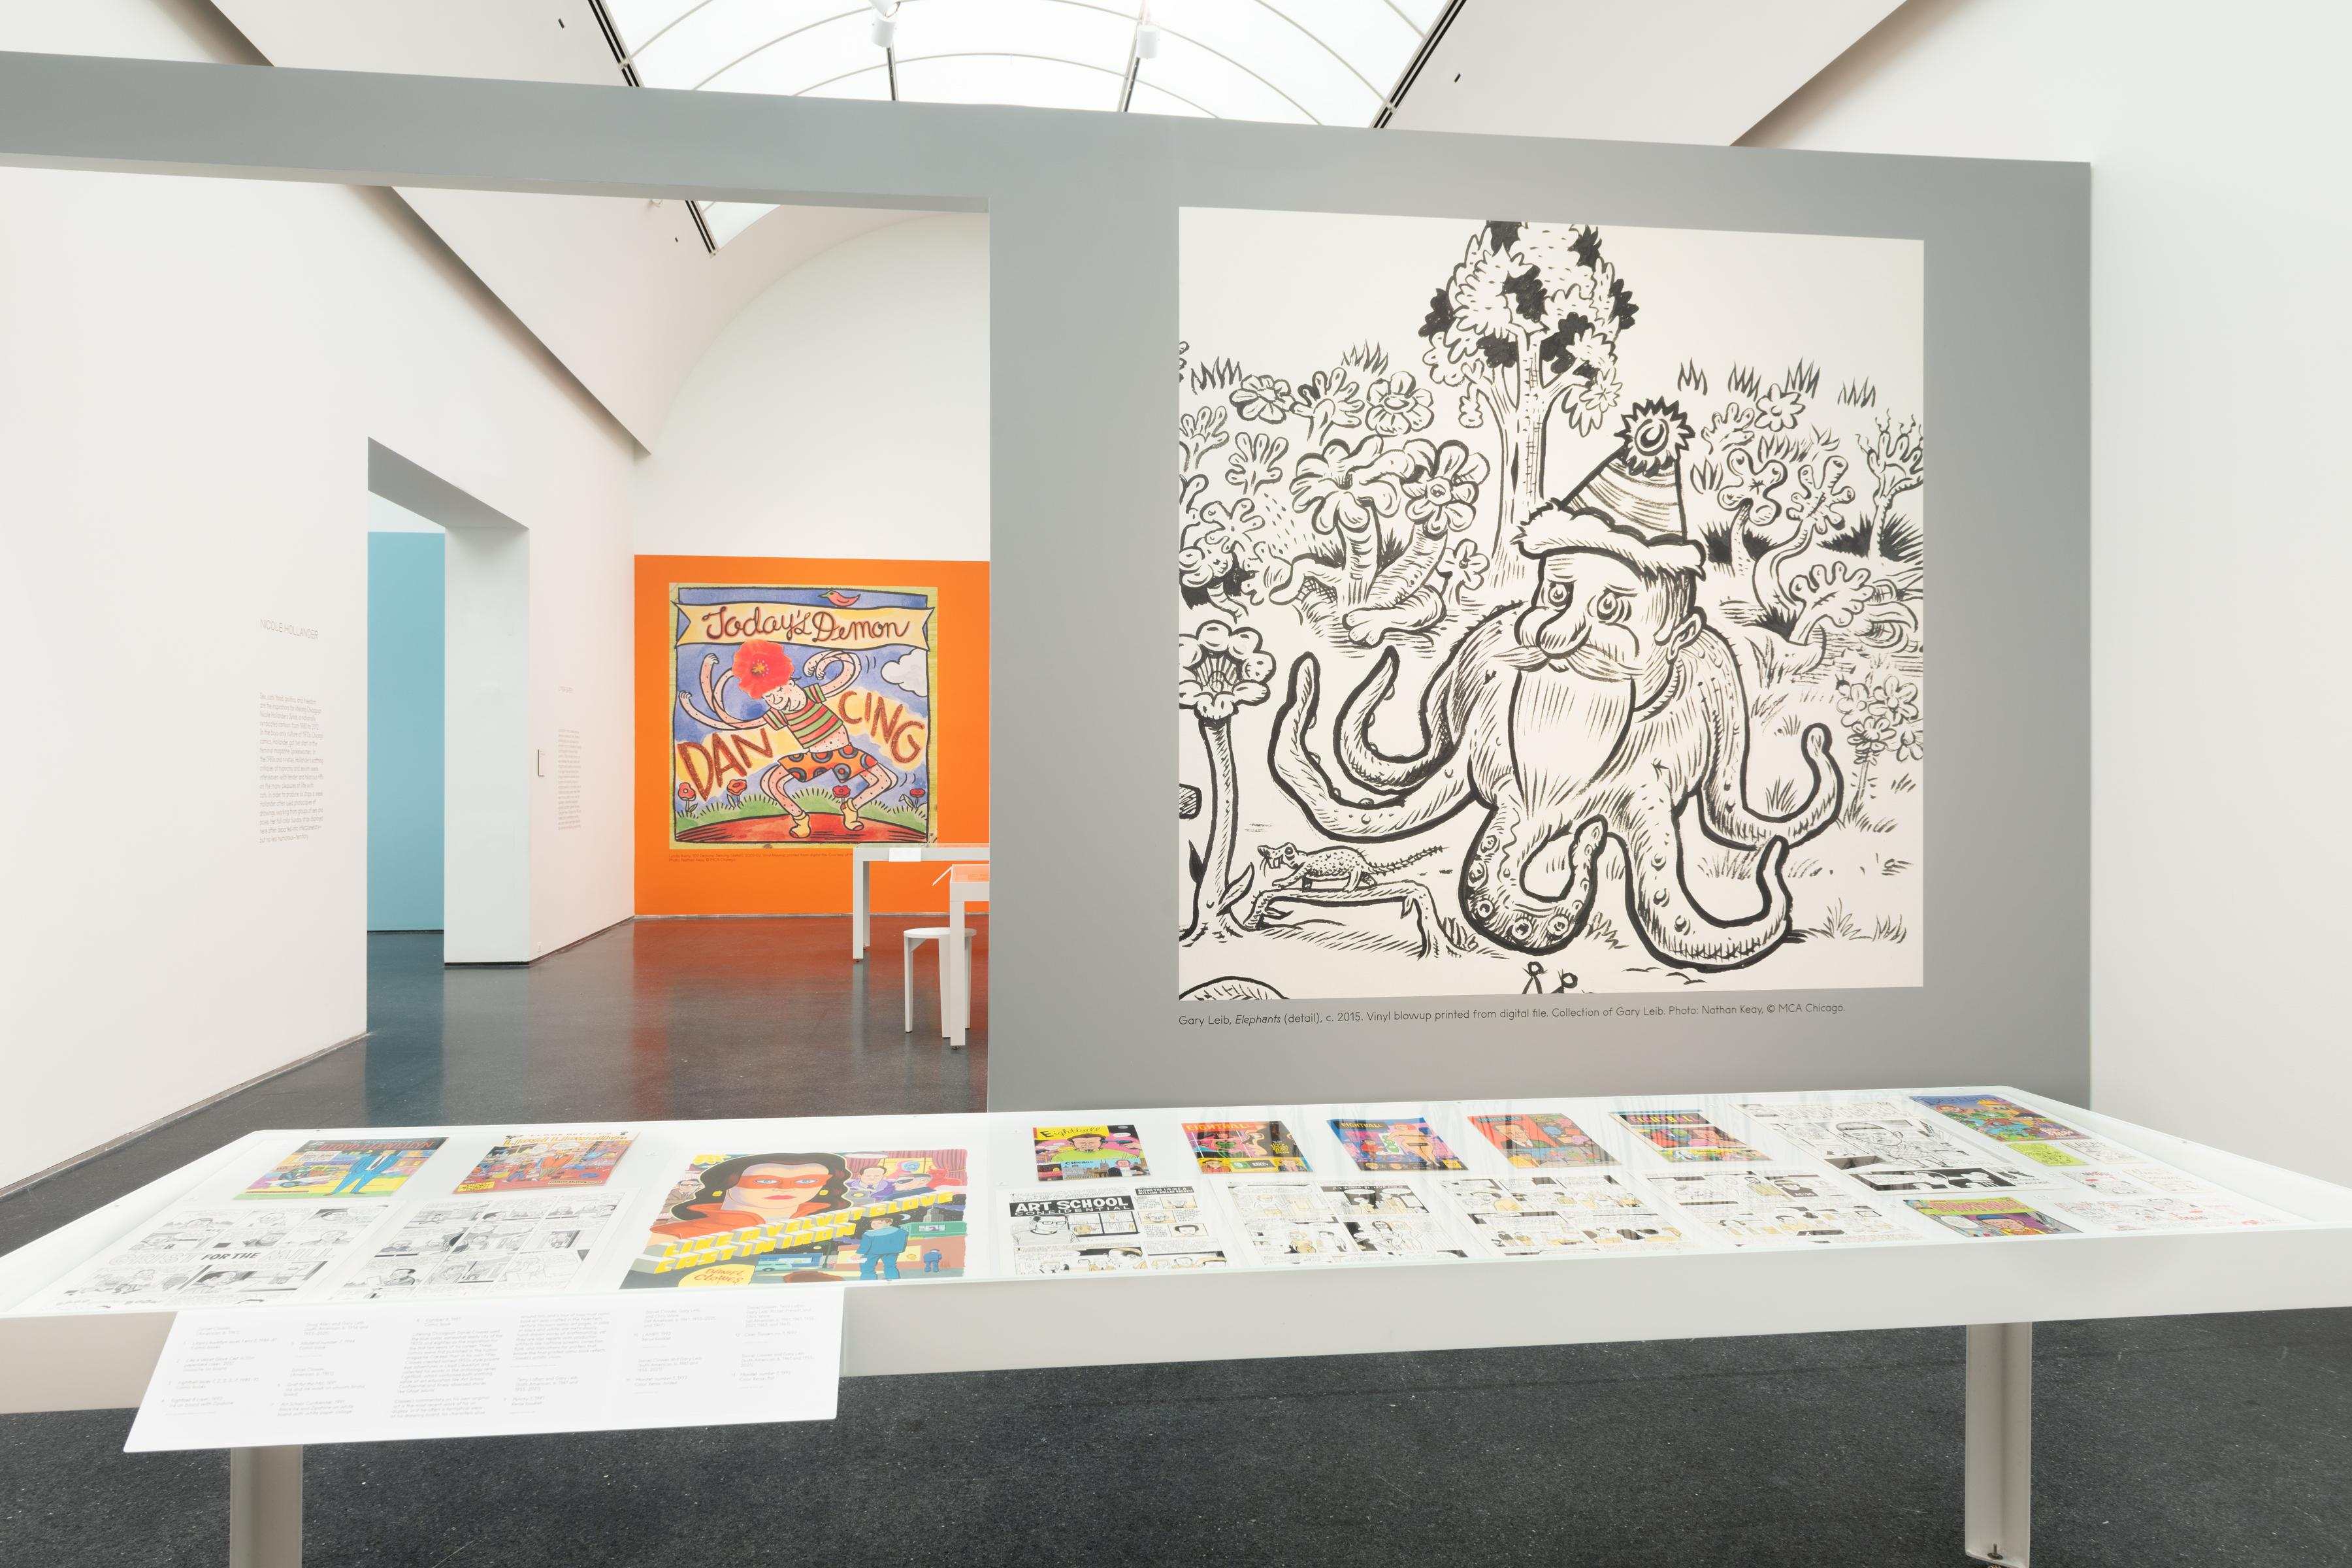 Exhibition interior showing a large line drawing of a Santa Claus octopus